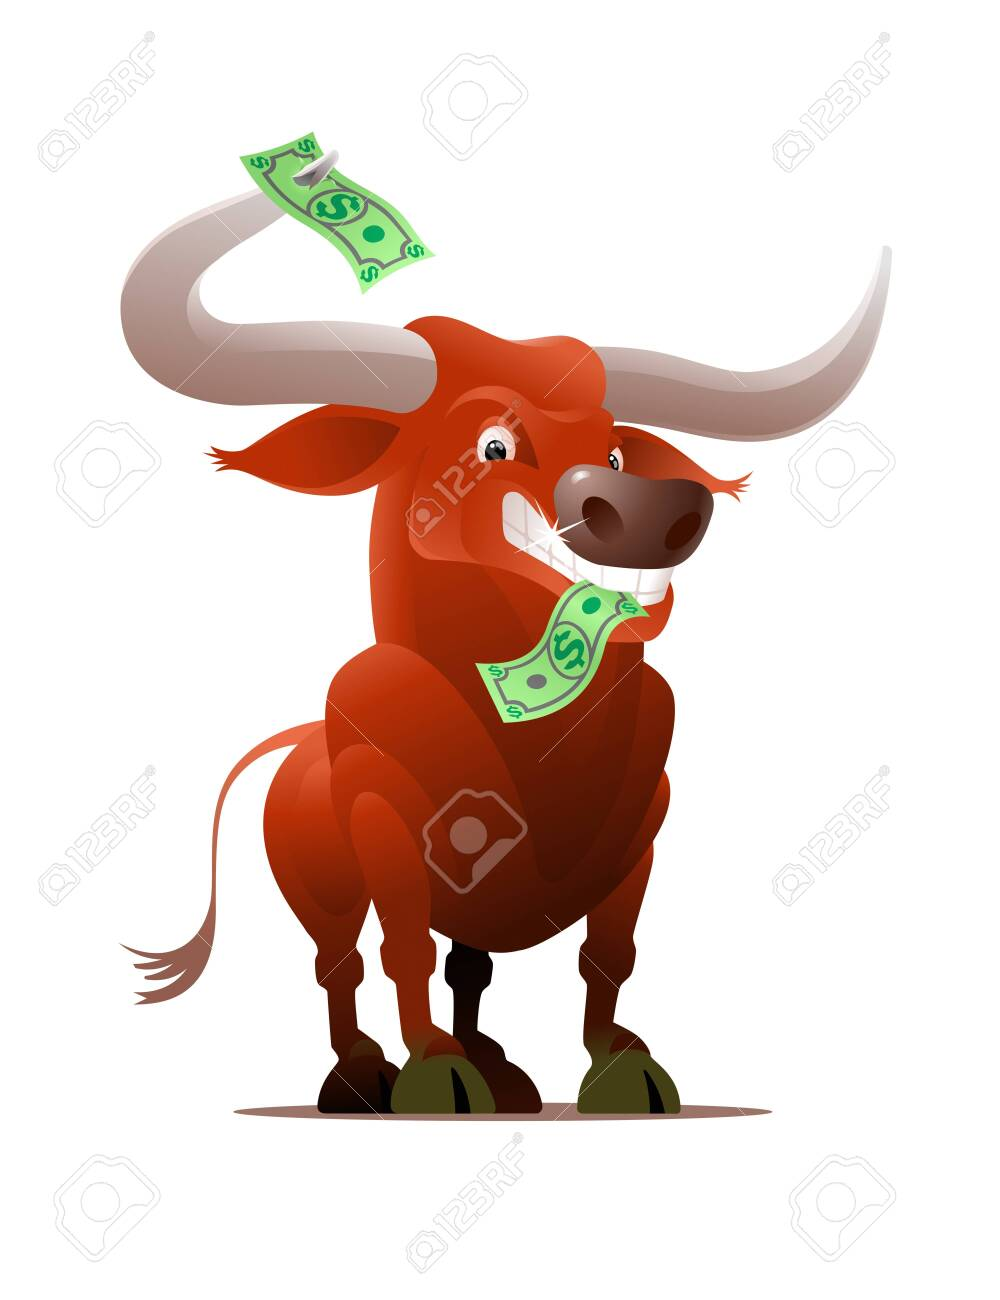 Stock Market Cartoon Bull. Red bull pictured in a cartoon style clenching a dollar banknote by tooths. - 149878906